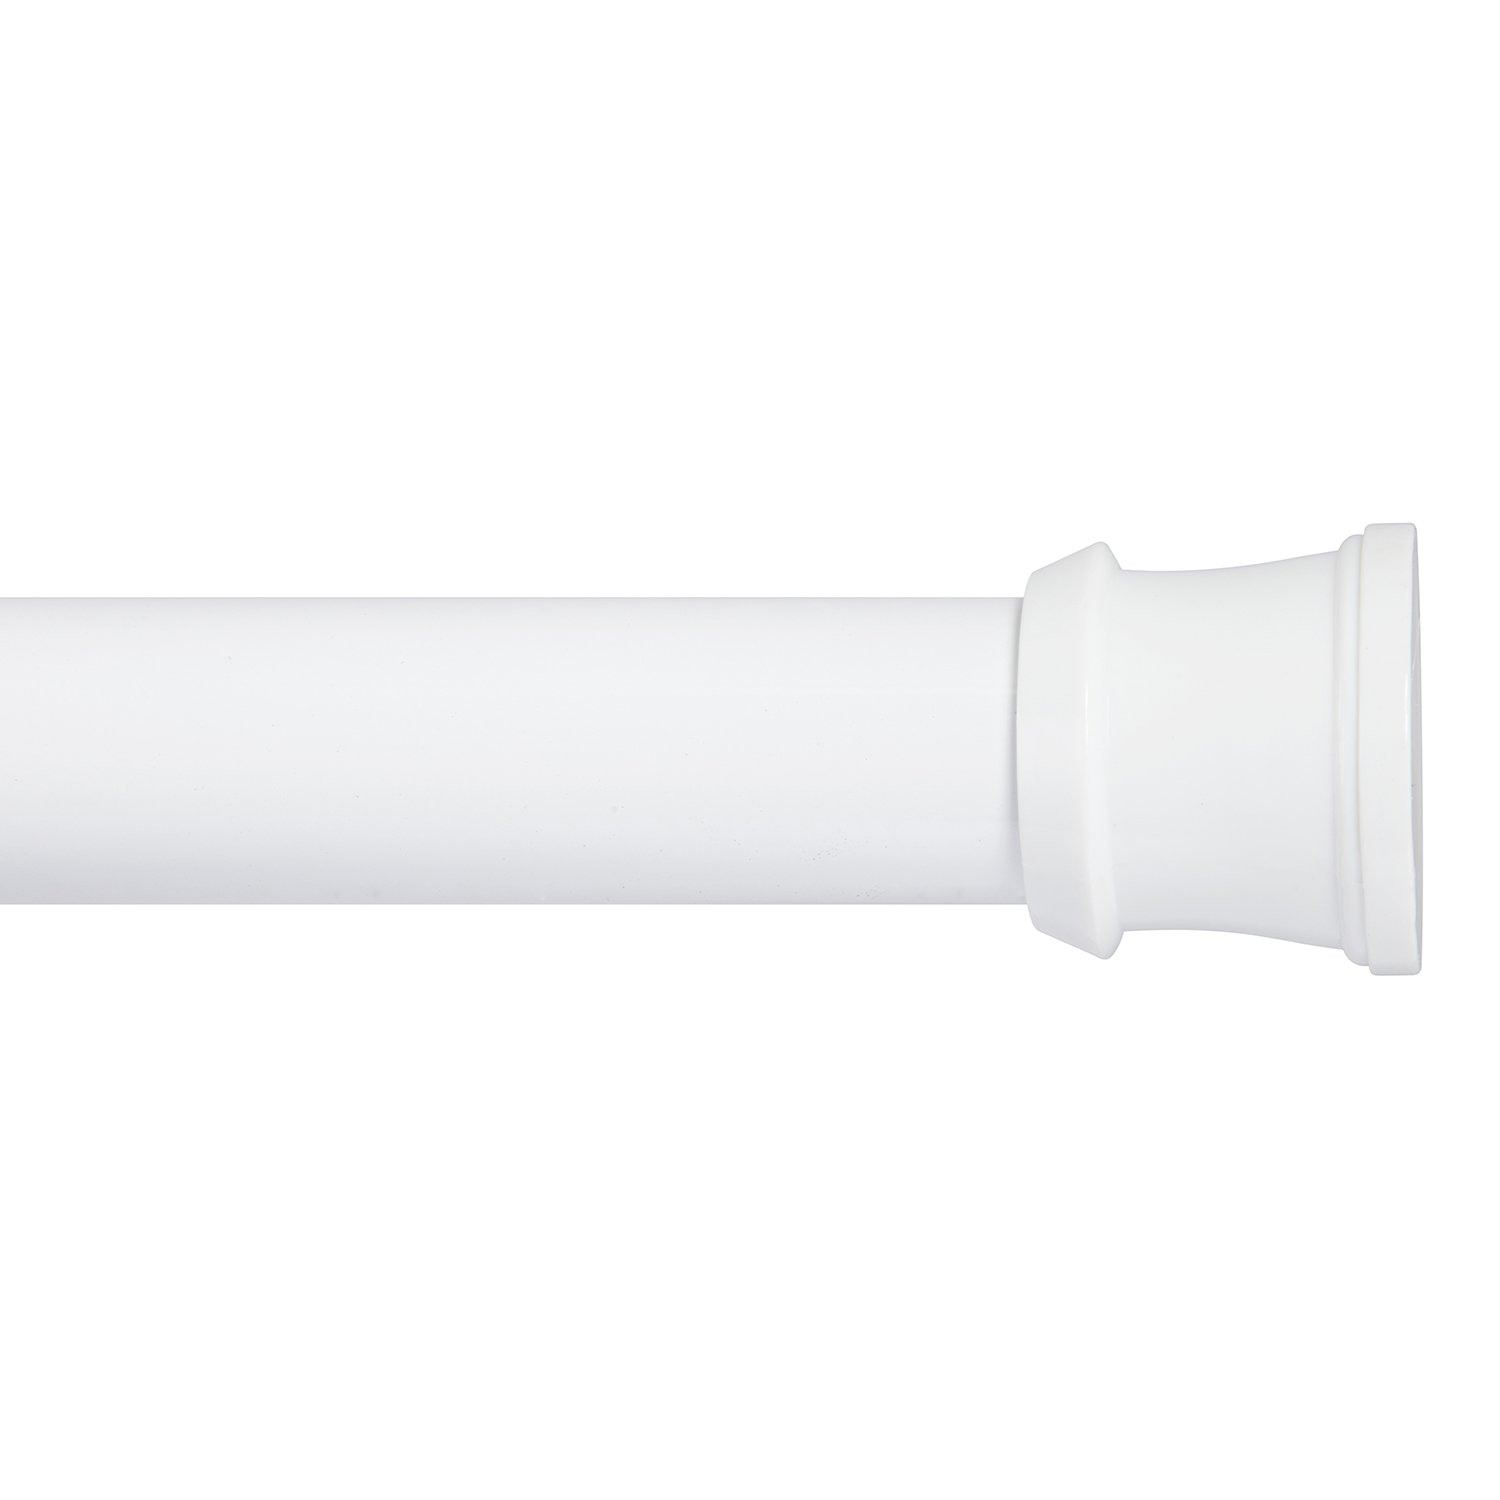 Kenney Twist & Fit No Tools Tension Shower Curtain Rod, 42-72'', White